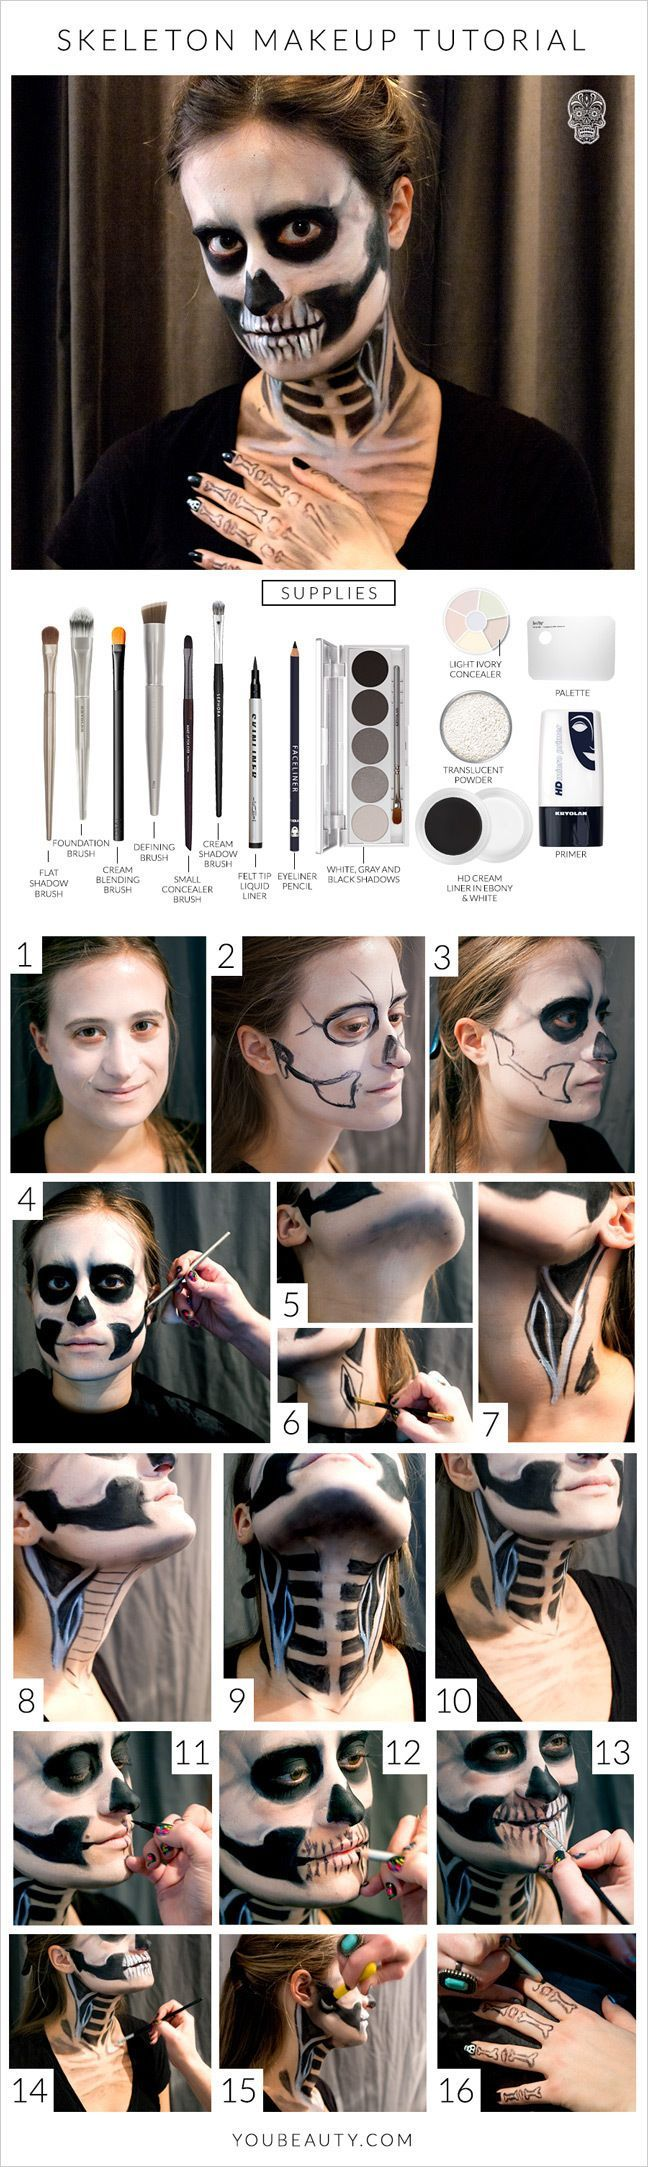 You Can Do This Halloween Skeleton Makeup Tutorial With Makeup You Already Own: